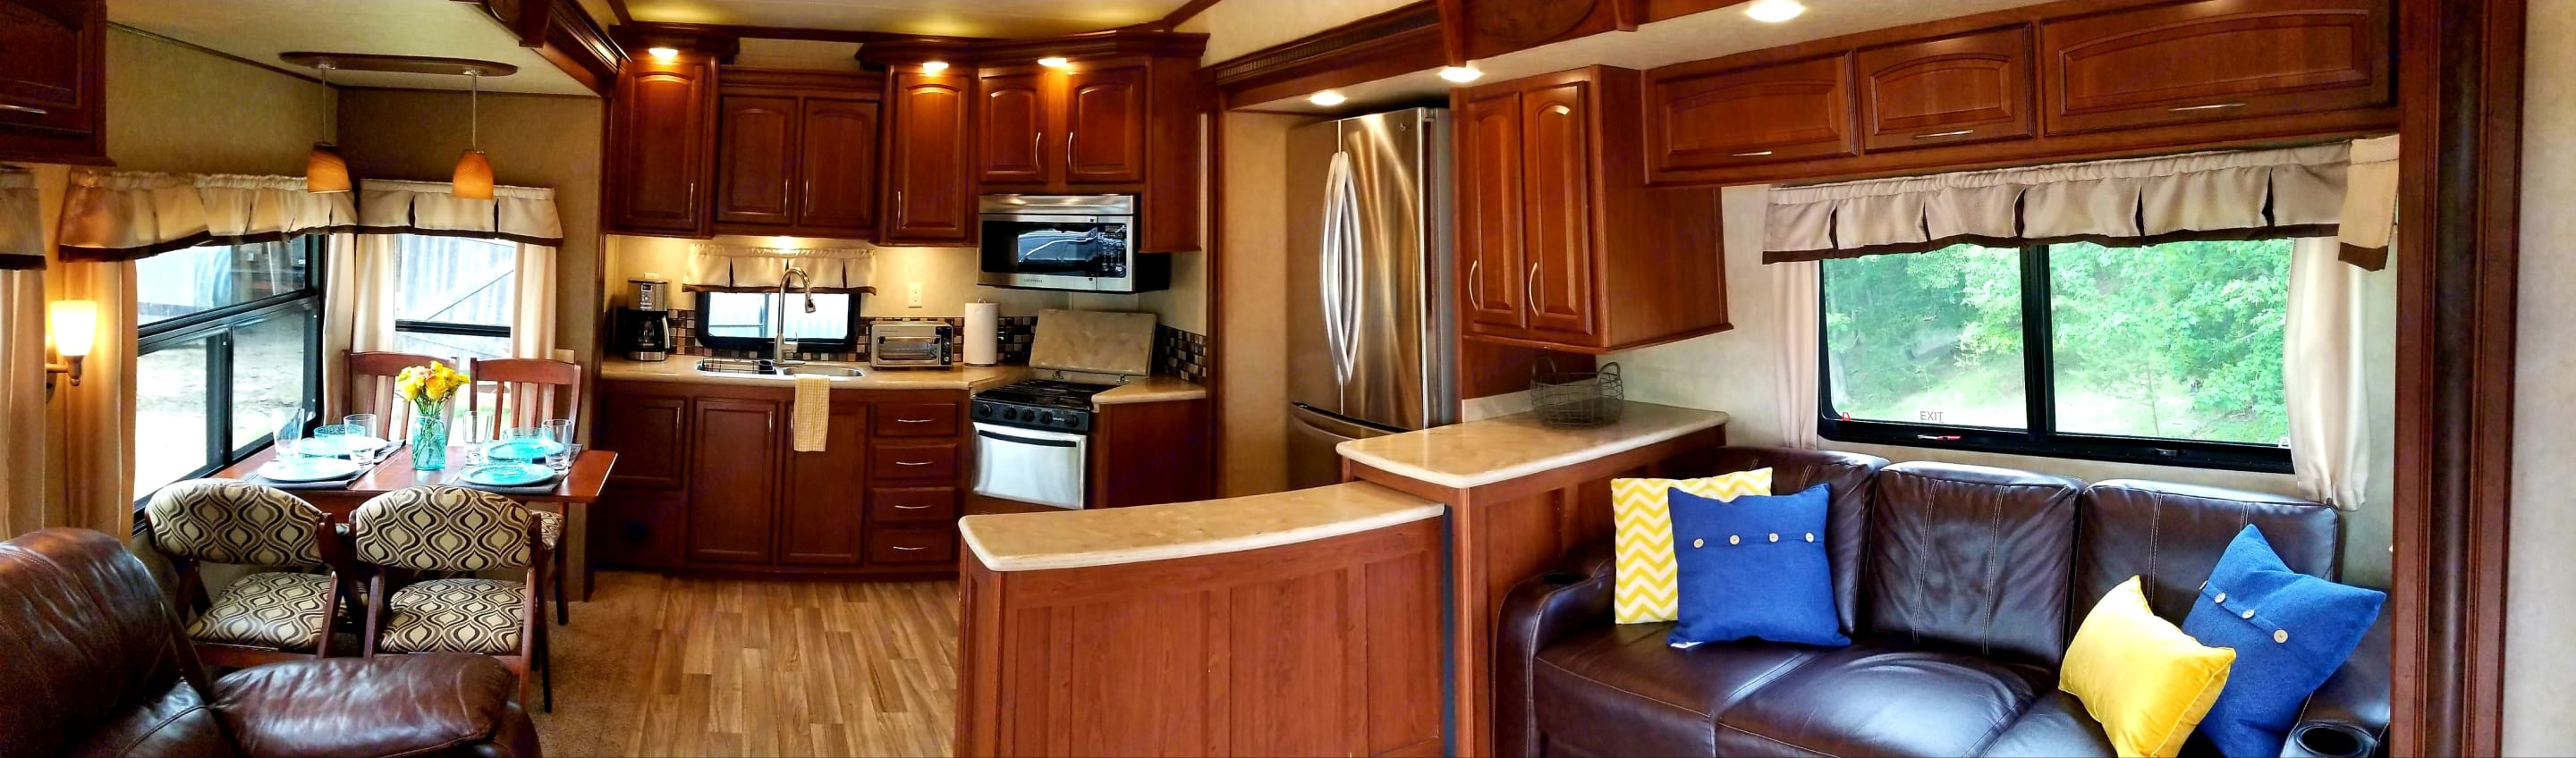 Spacious kitchen to make your camp-site cooking feel like home!. Palomino Columbus 2015